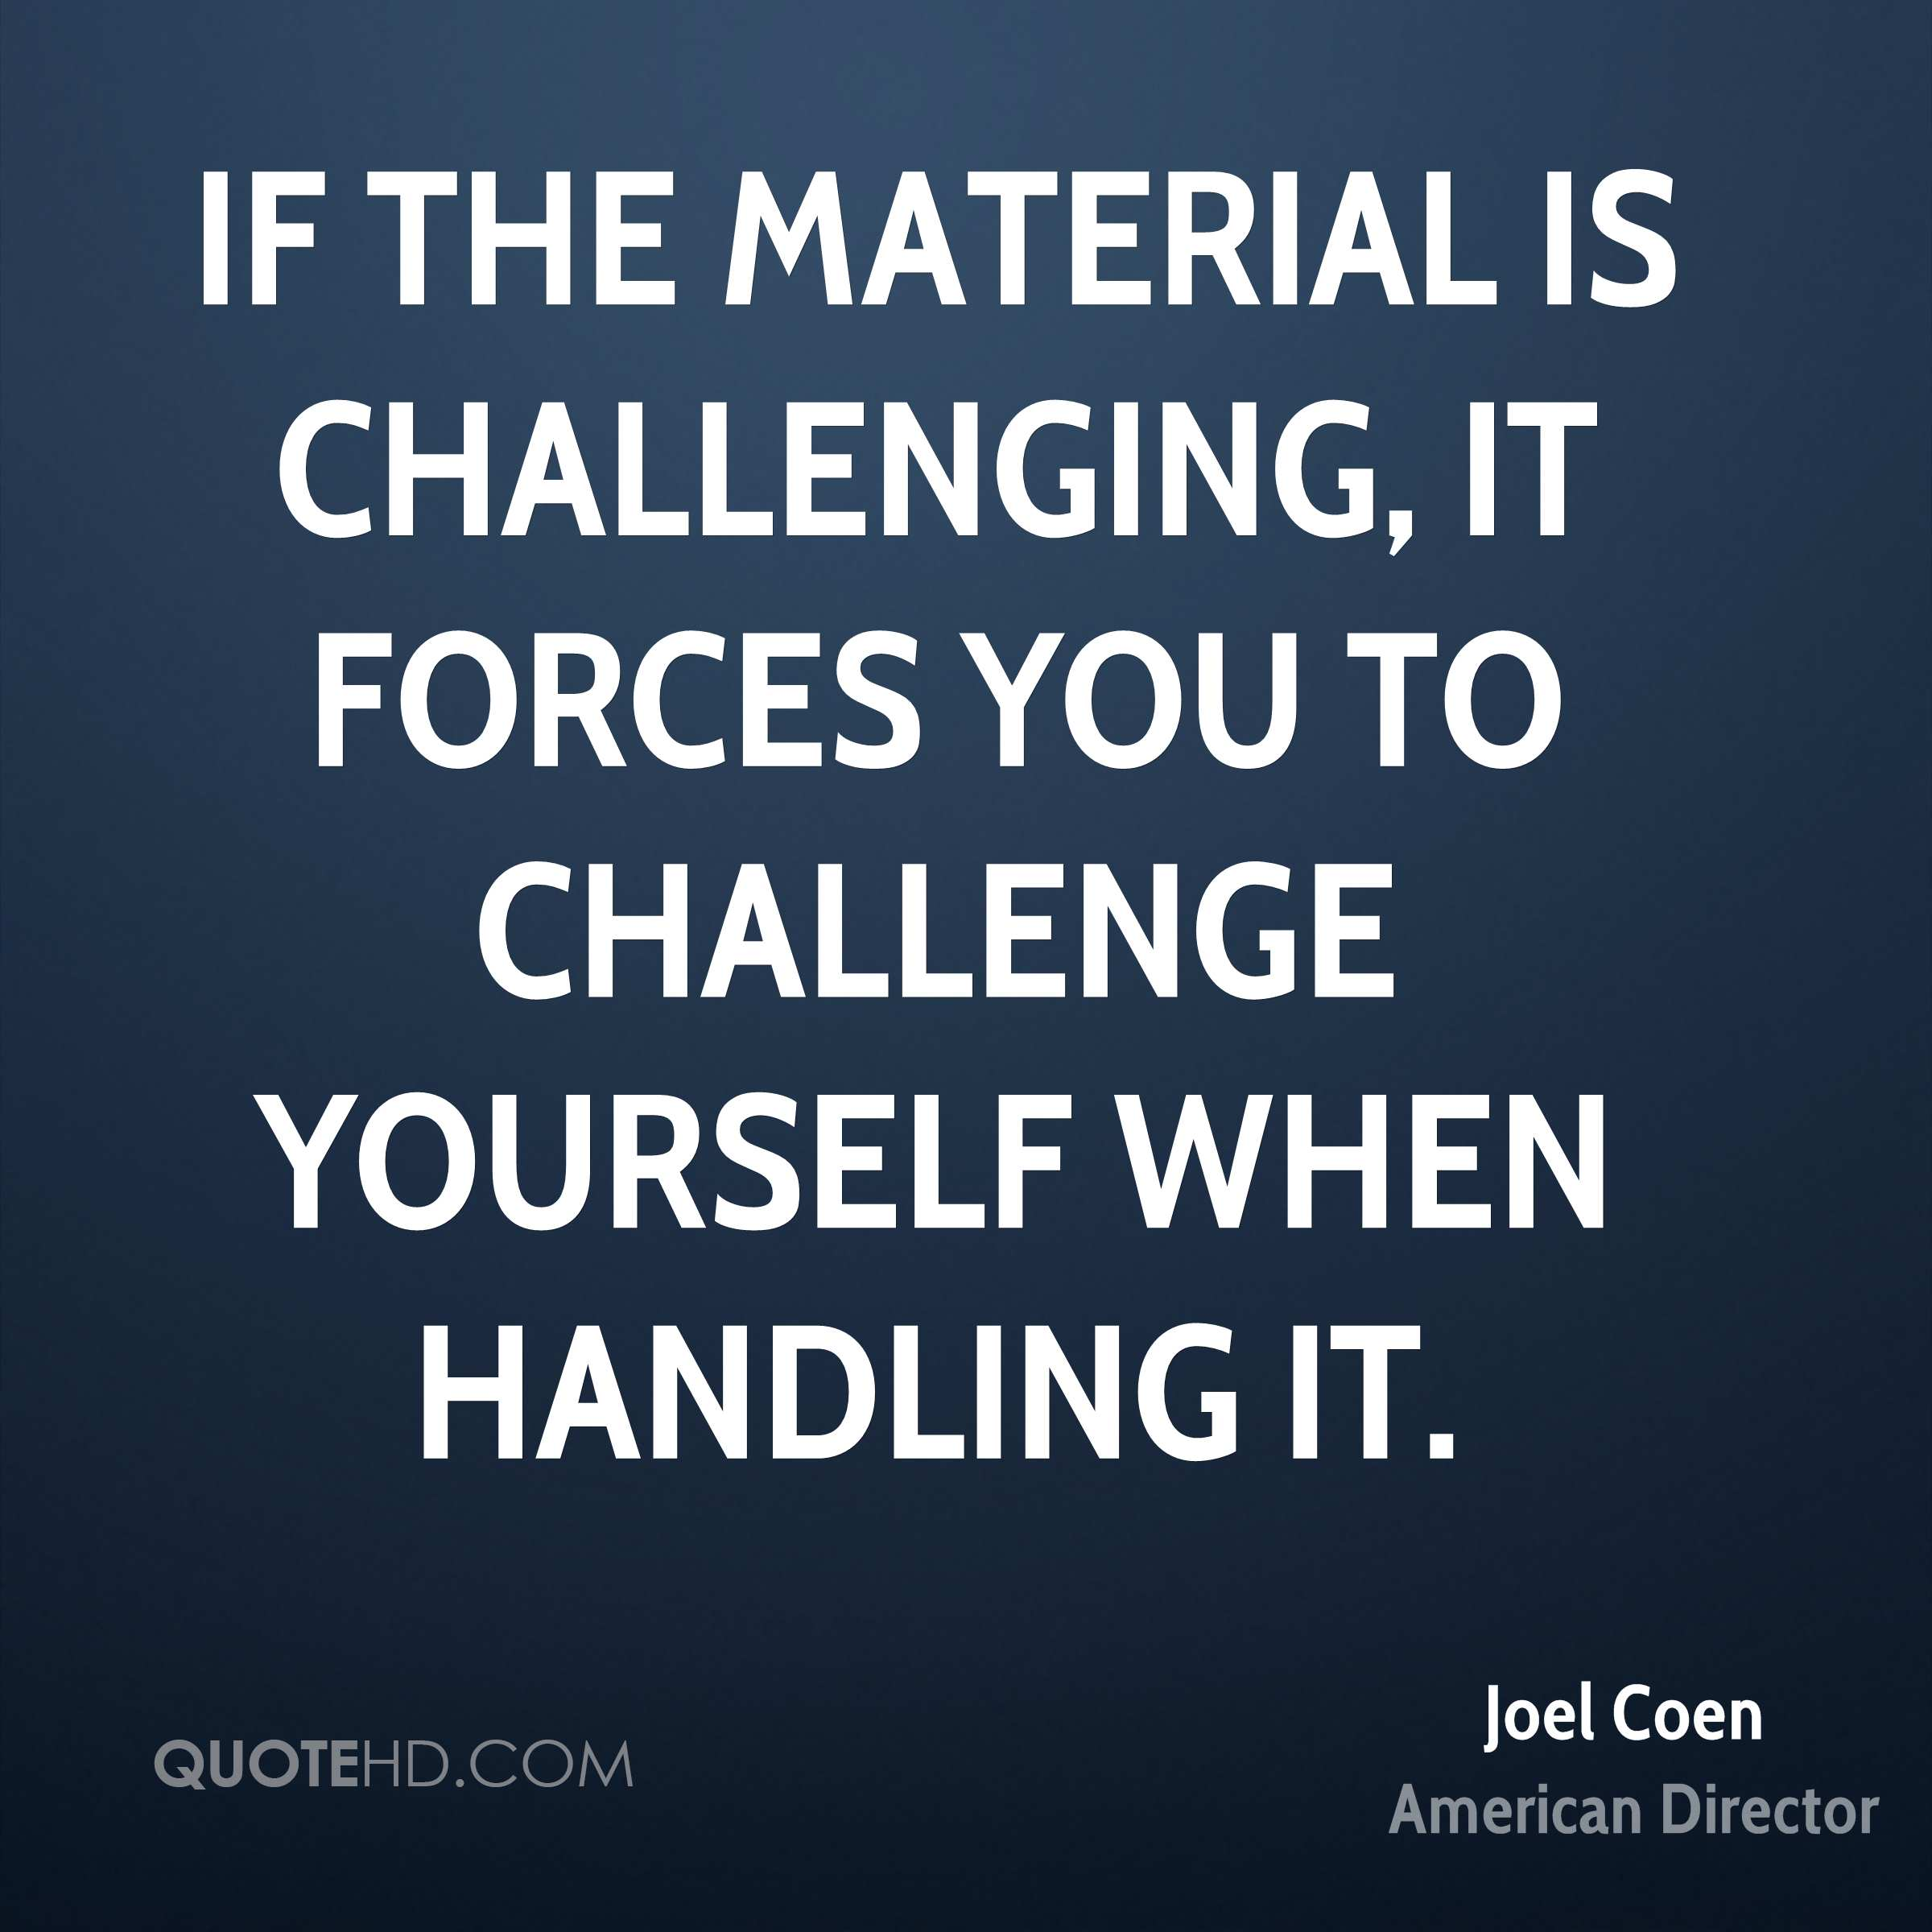 If the material is challenging, it forces you to challenge yourself when handling it.